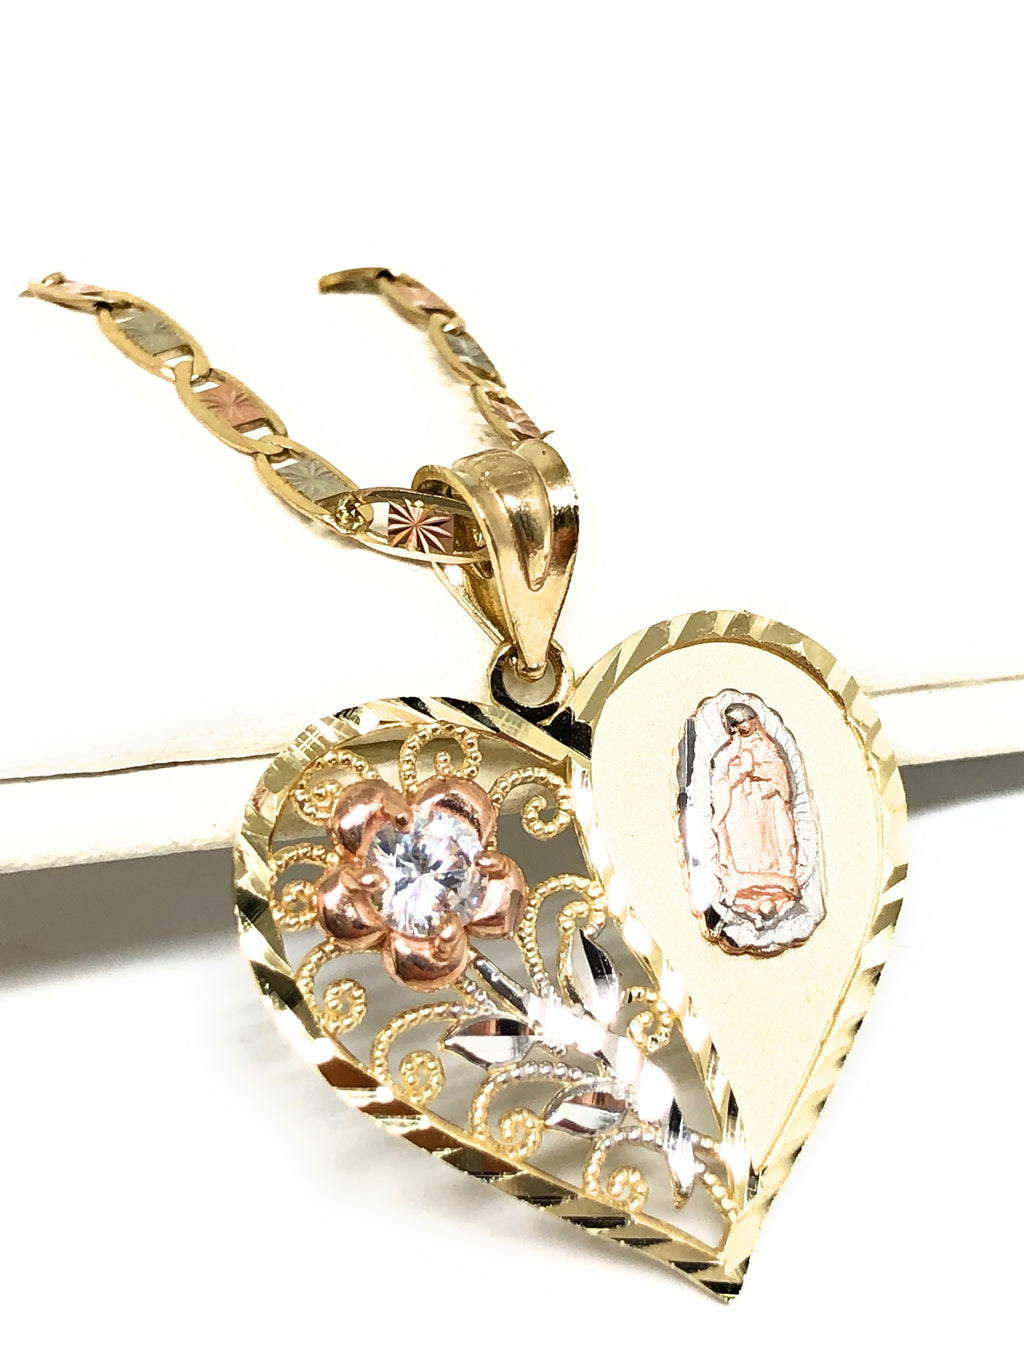 10k Solid Gold Tri-Color Virrgin Mary Heart & Flower CZ Pendant Necklace Virrgen Gaudalupe Valentina Chain